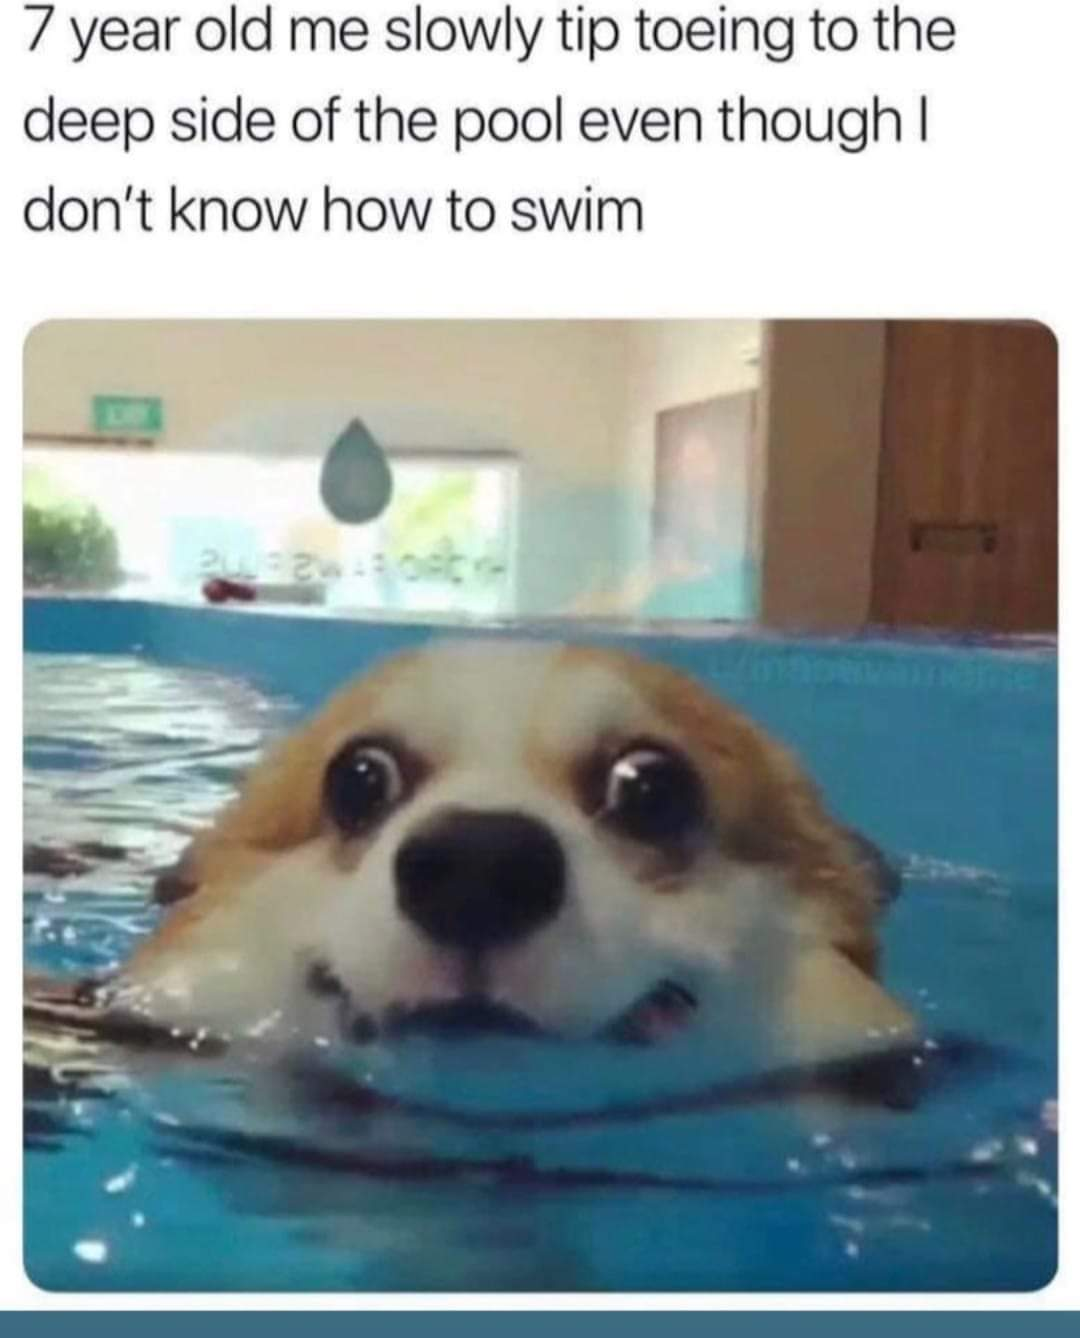 Memes Standing in the pool as a kid deep end